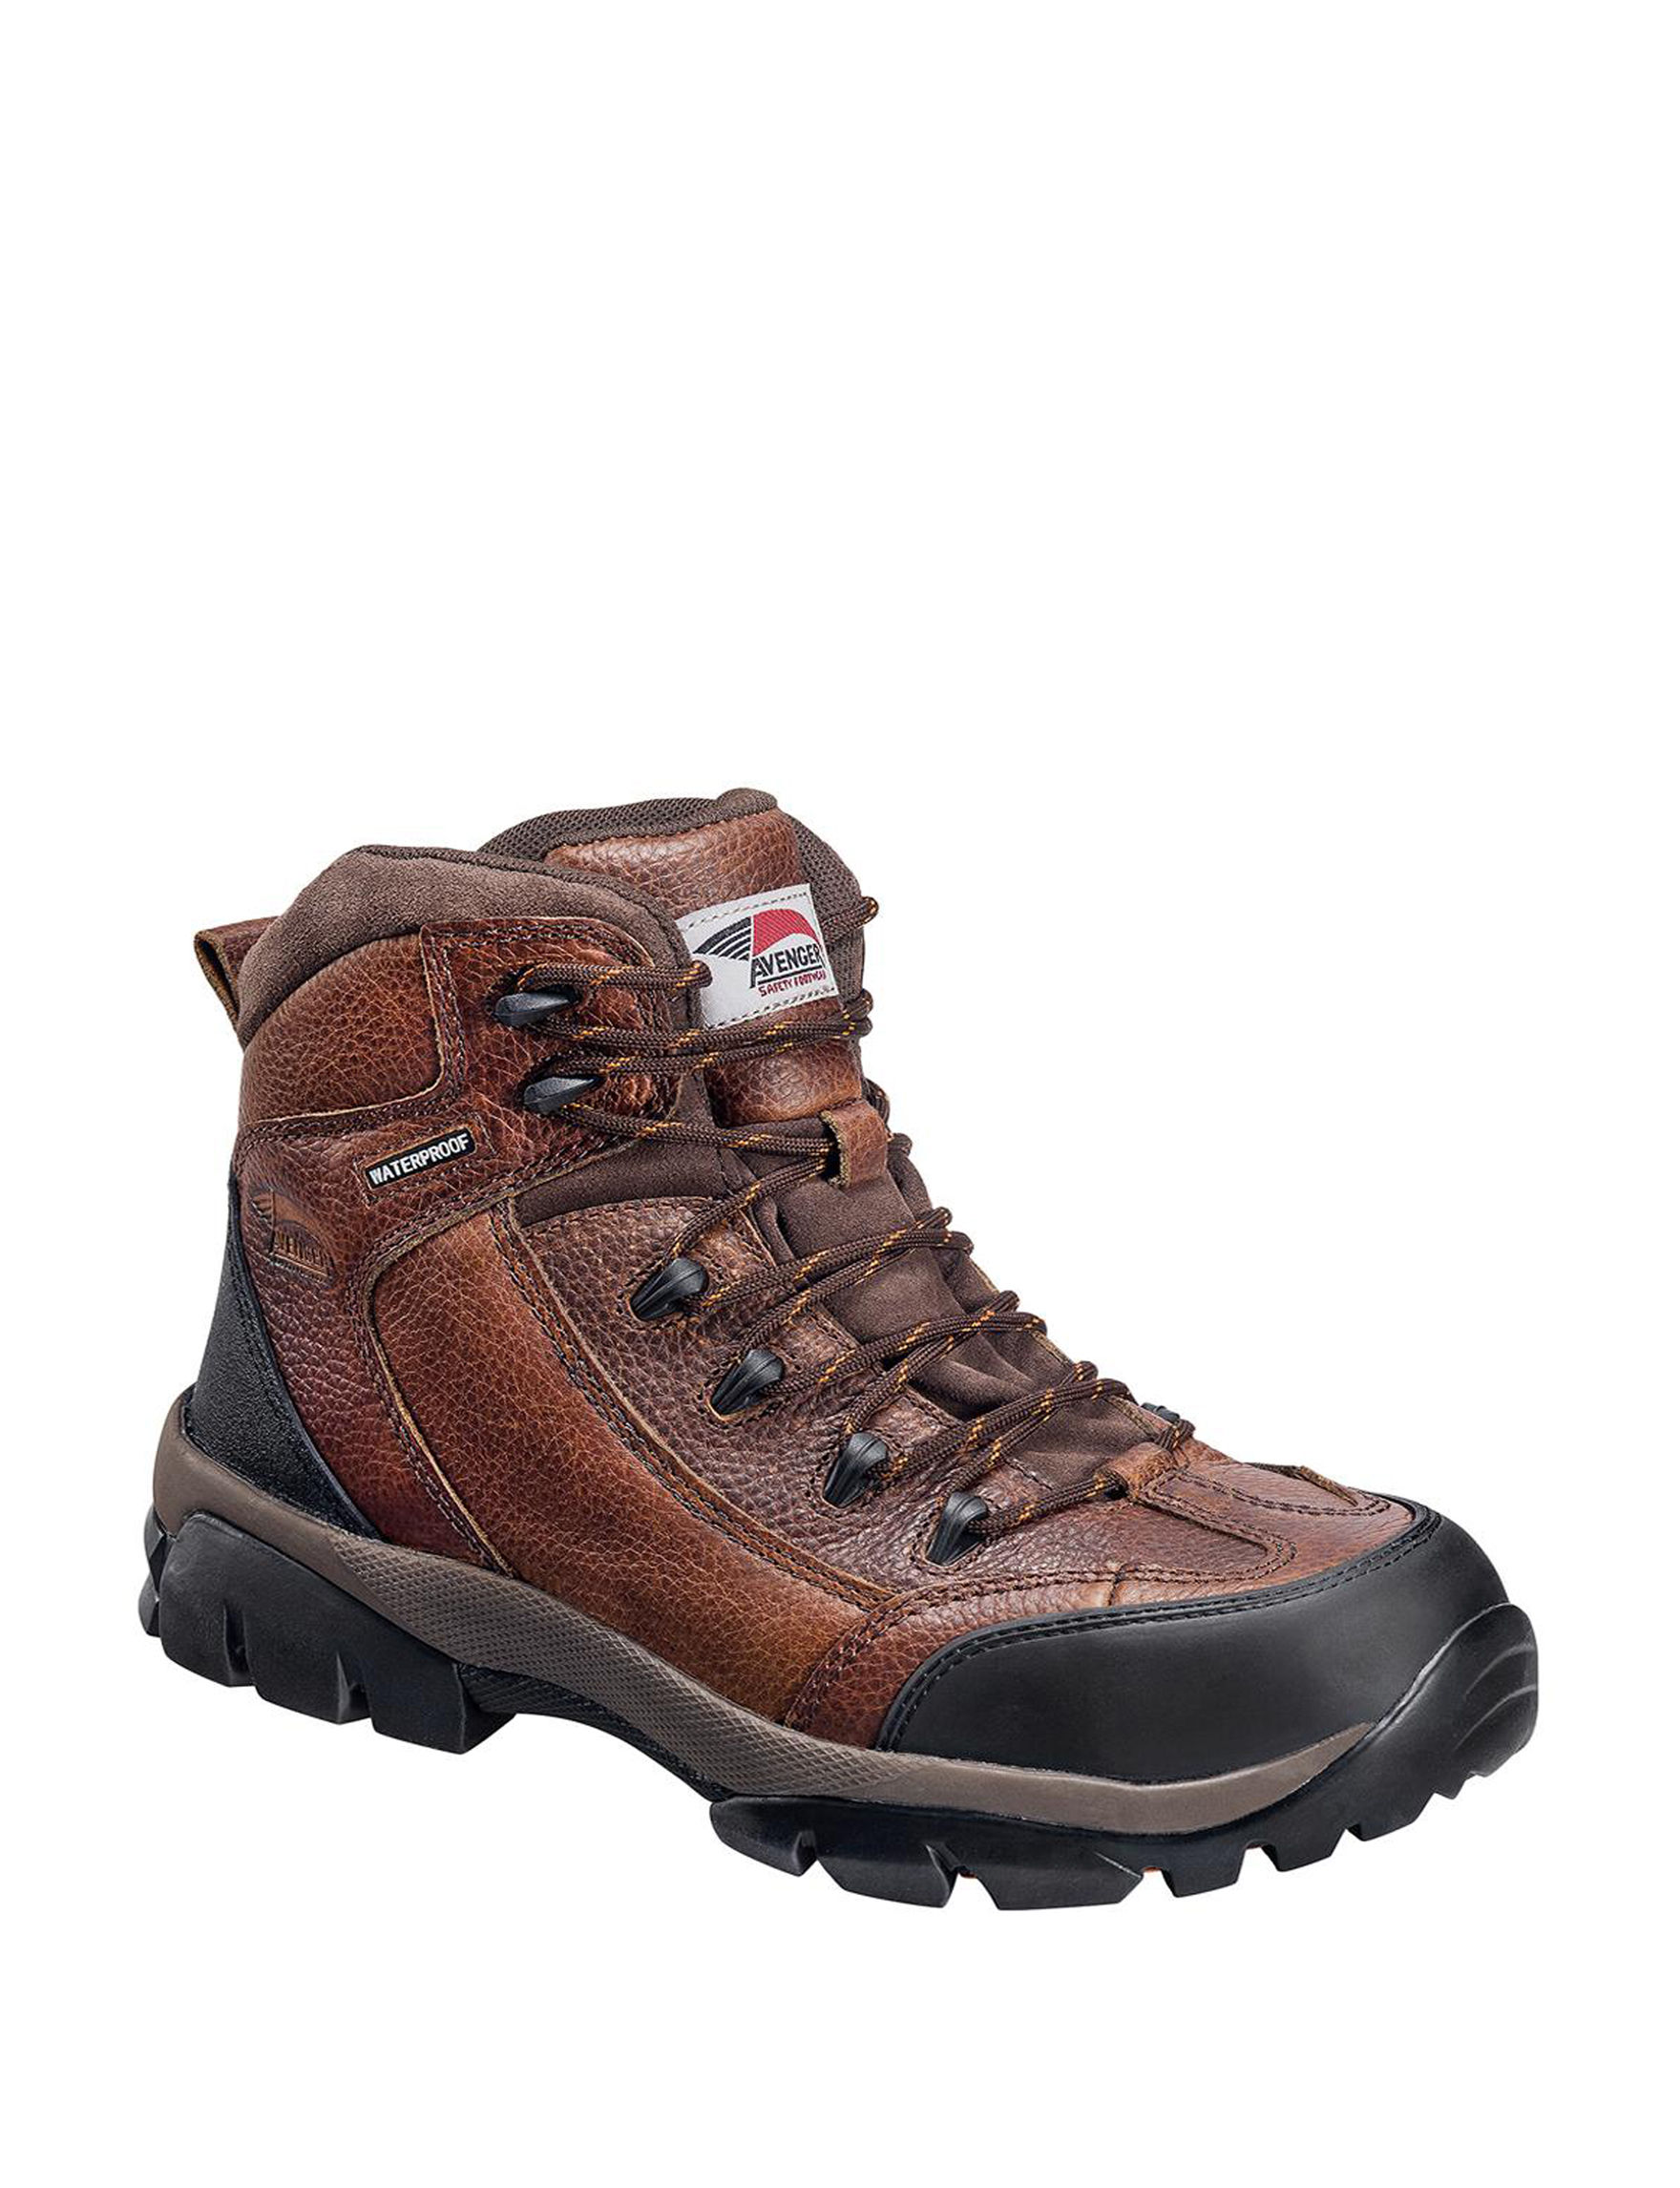 Avenger Brown Hiking Boots